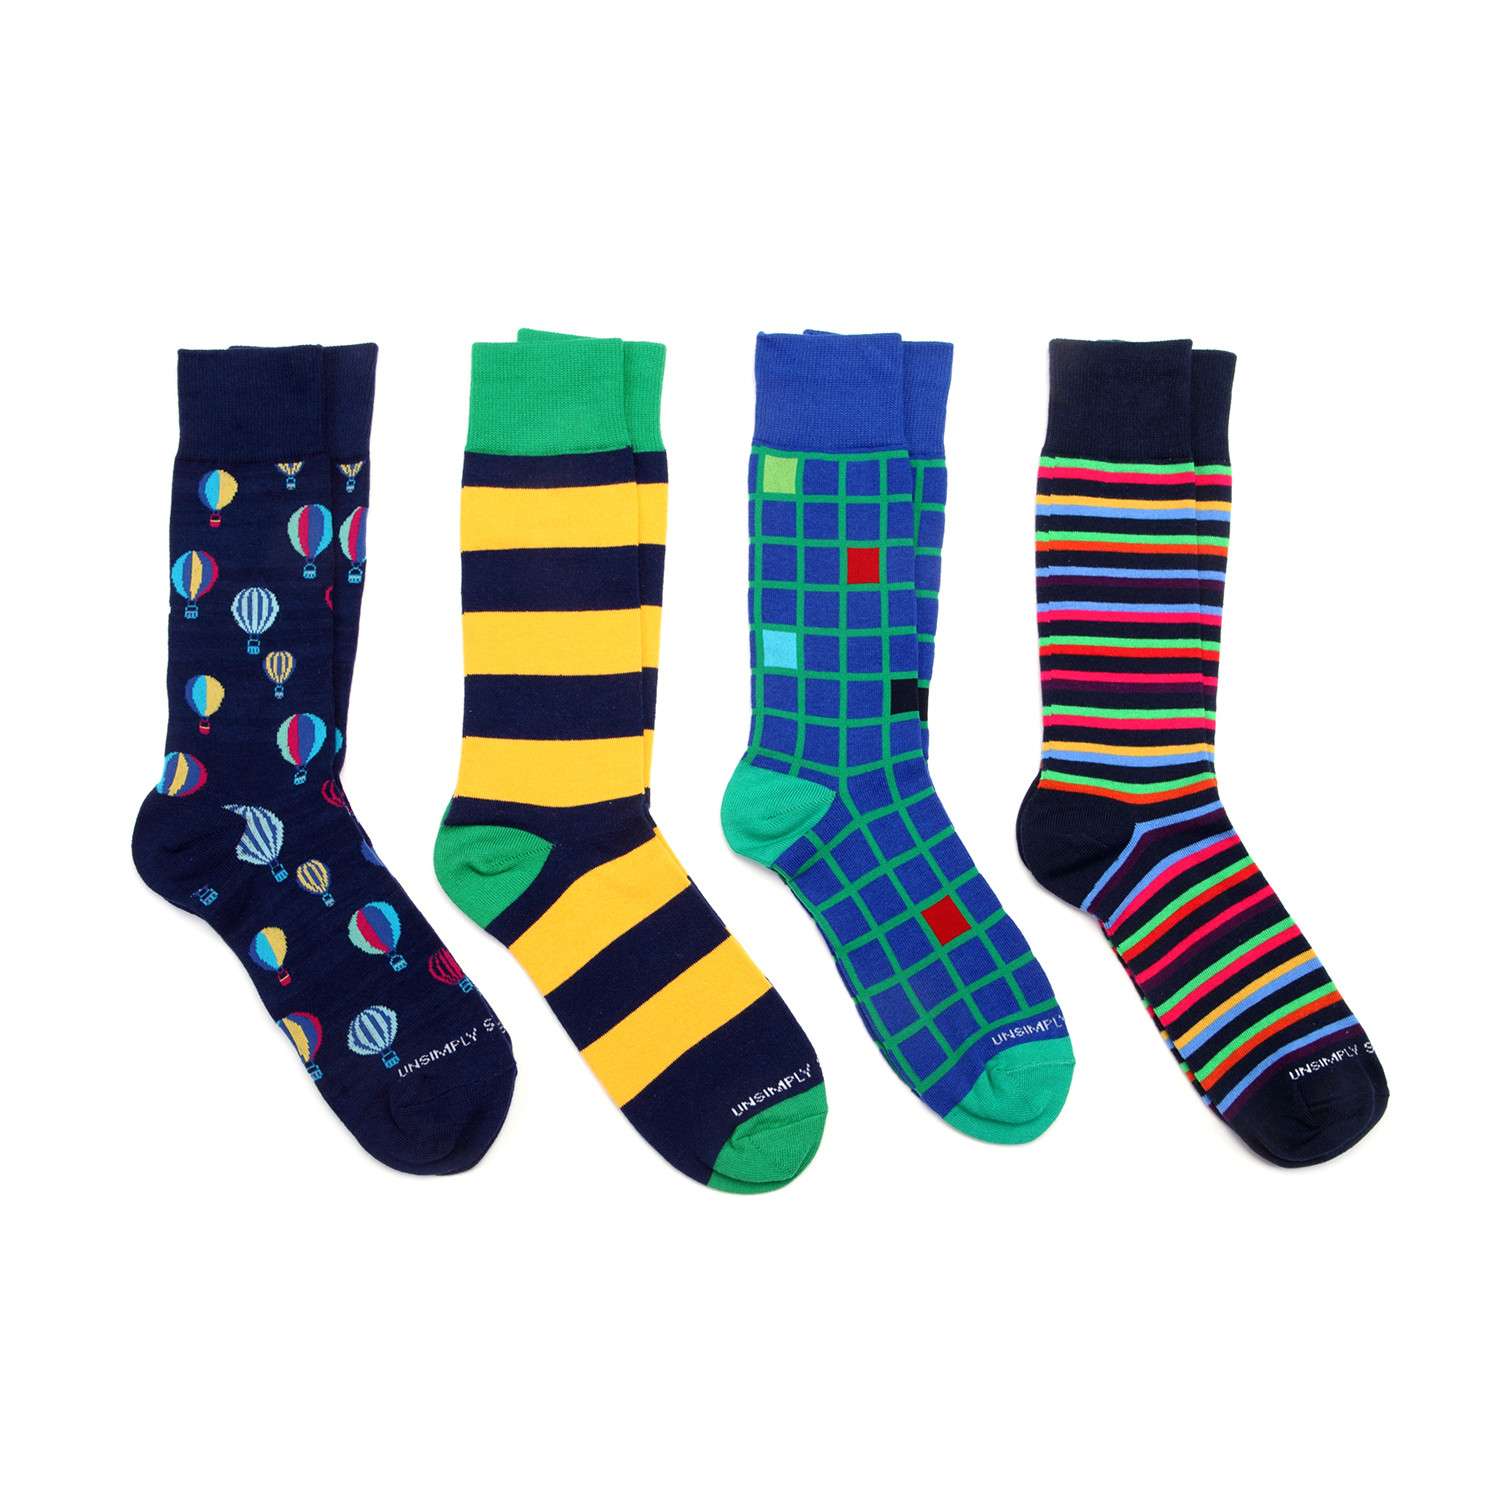 Dress socks balloons ii pack of 4 unsimply stitched touch of